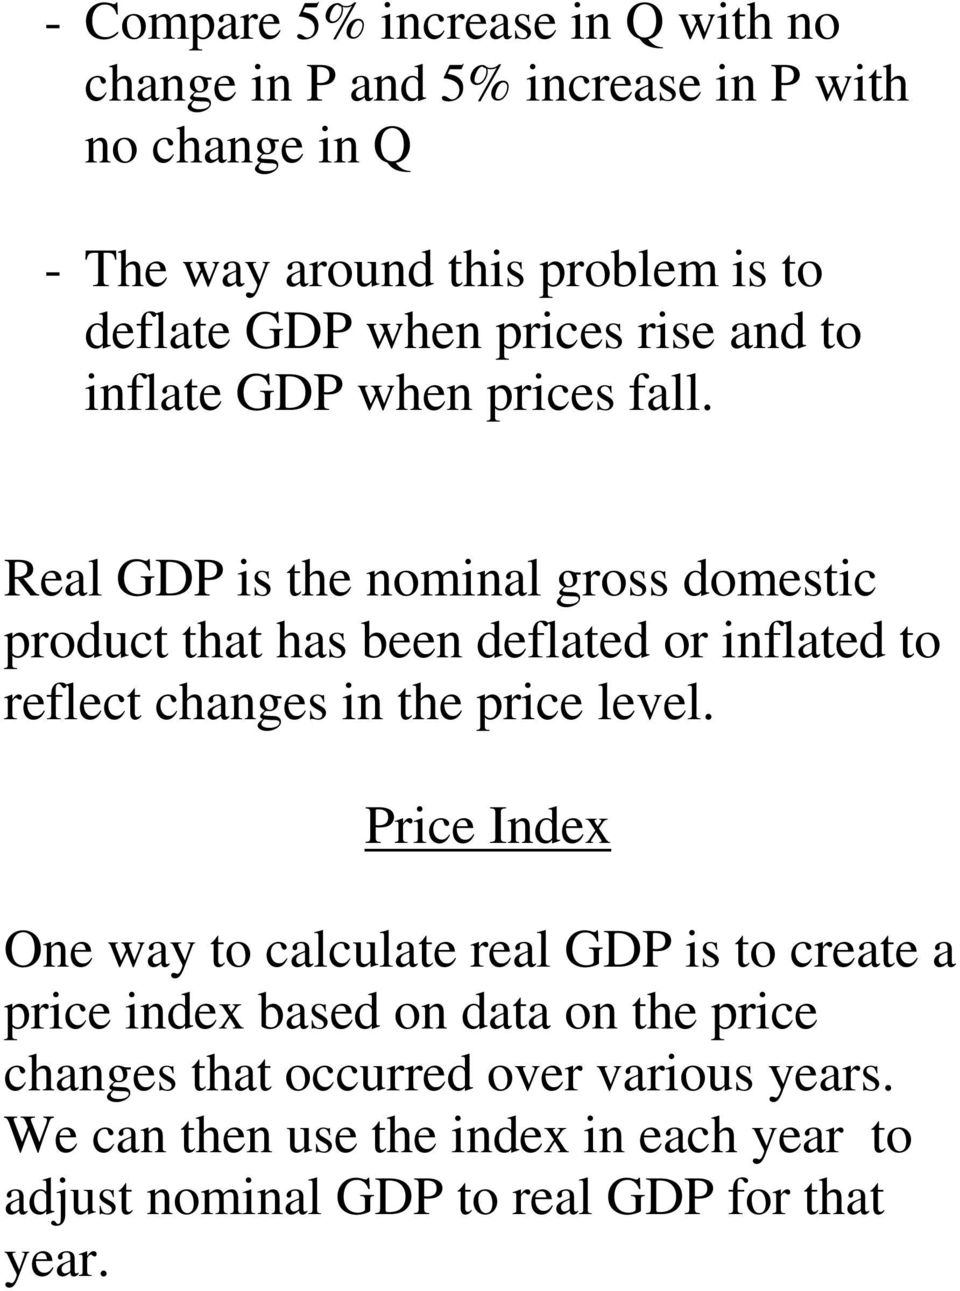 Real GDP is the nominal gross domestic product that has been deflated or inflated to reflect changes in the price level.